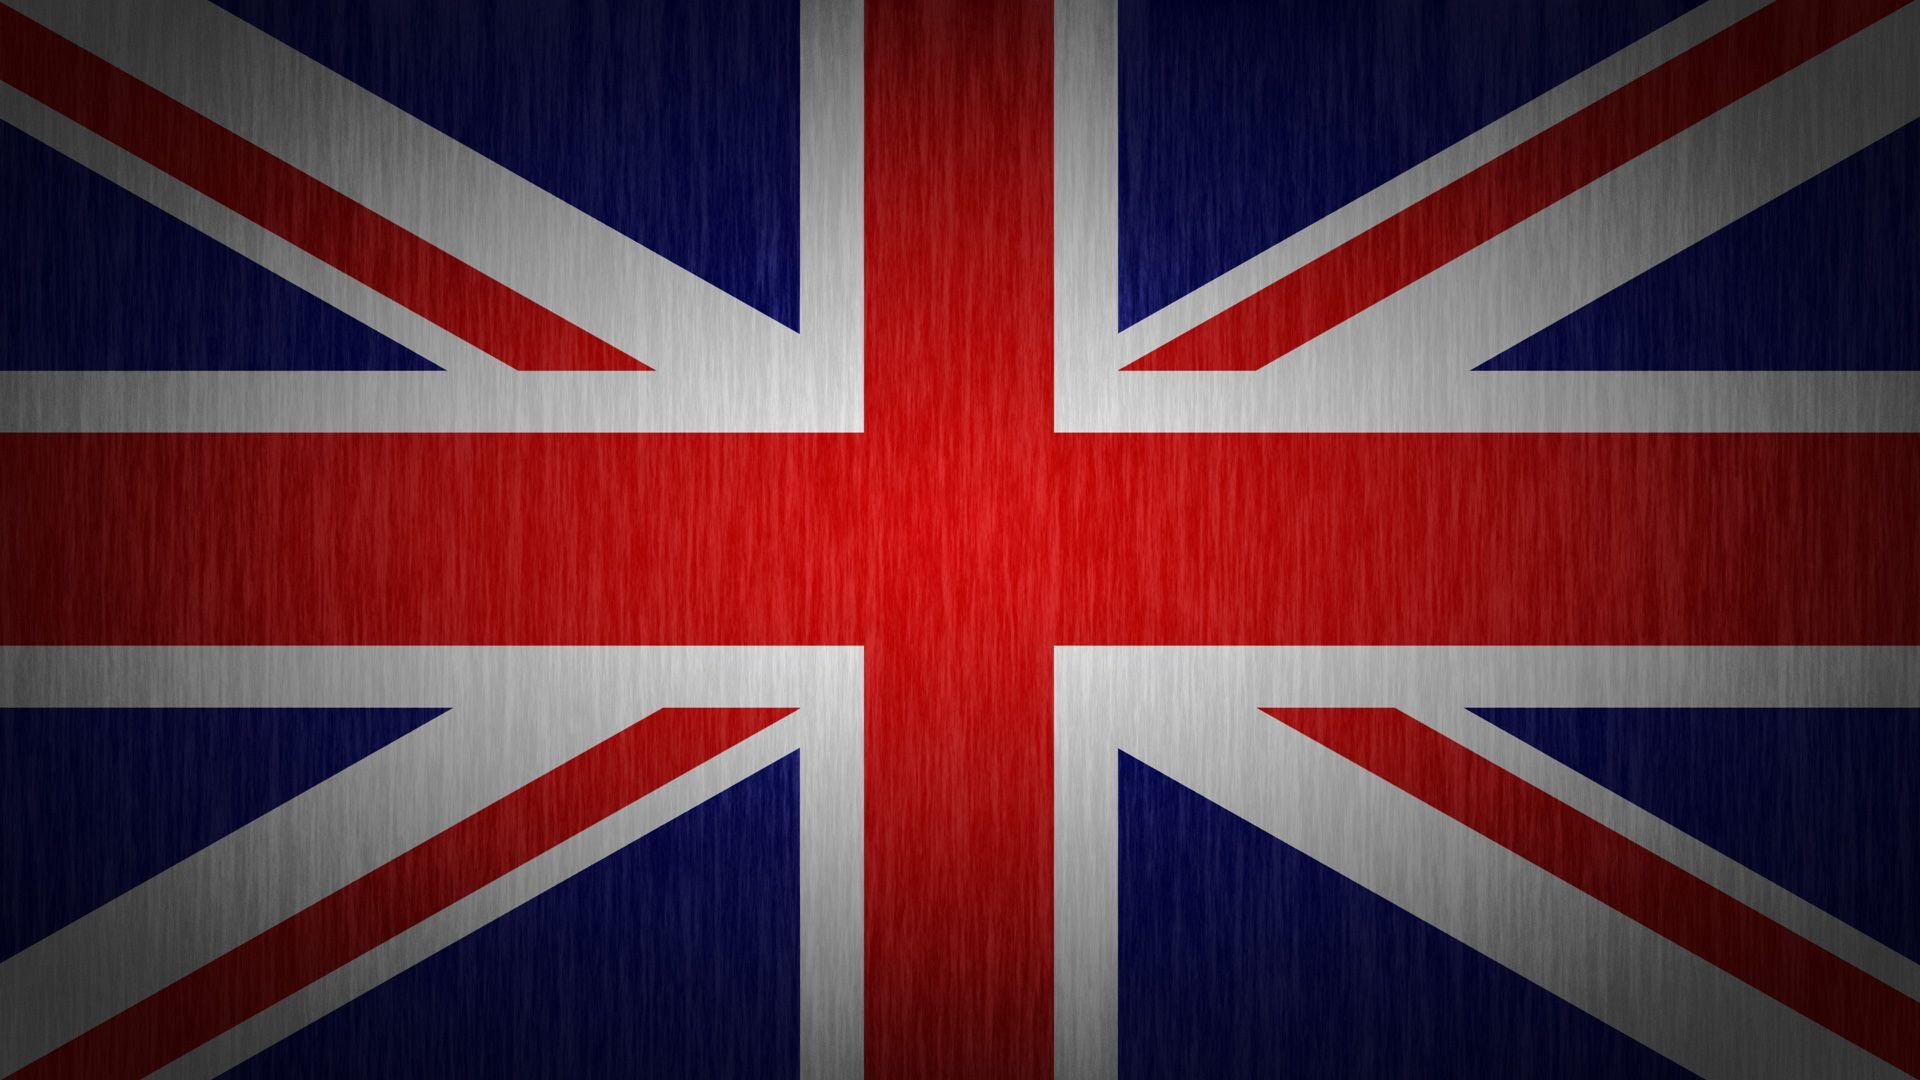 free download royal union flag hd wallpapers